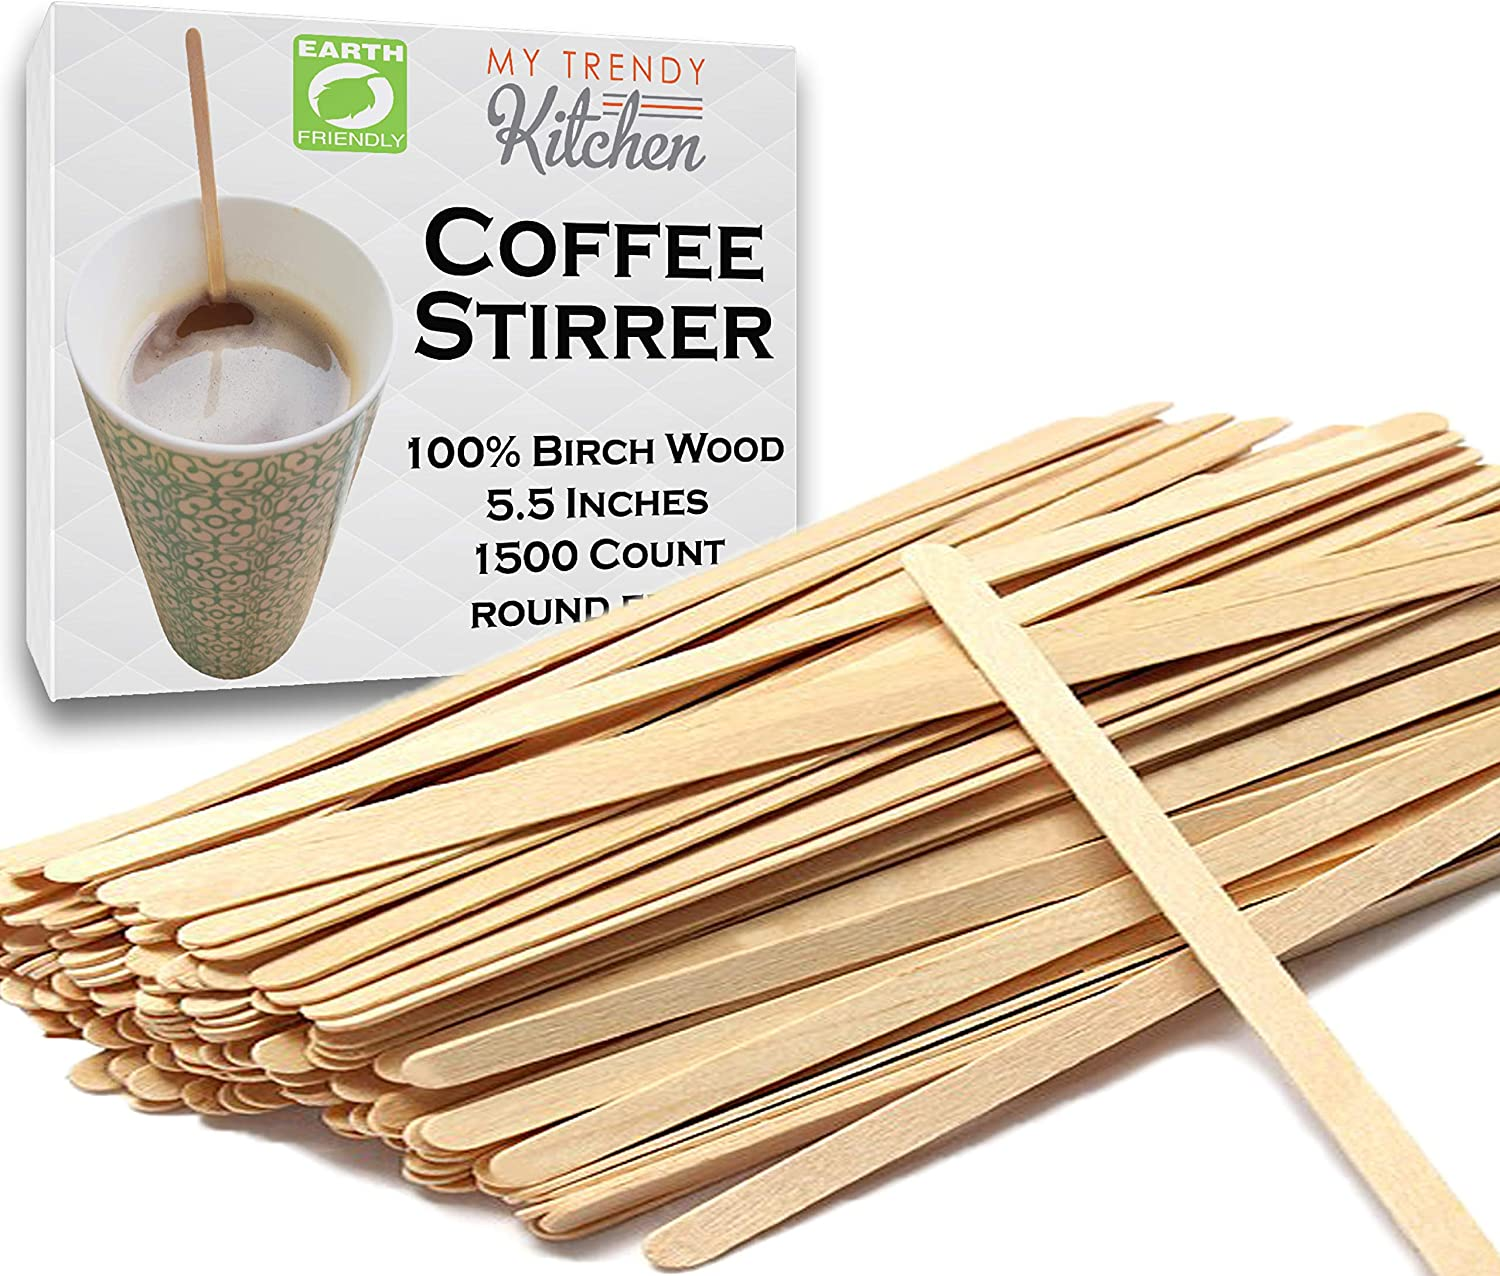 Wooden Coffee Stir Sticks (6000 Count) - Eco-Friendly, Biodegradable Splinter-Free Birch Wood - Disposable Drink Stirrers for Beverage, Tea, and Crafts with Round Ends